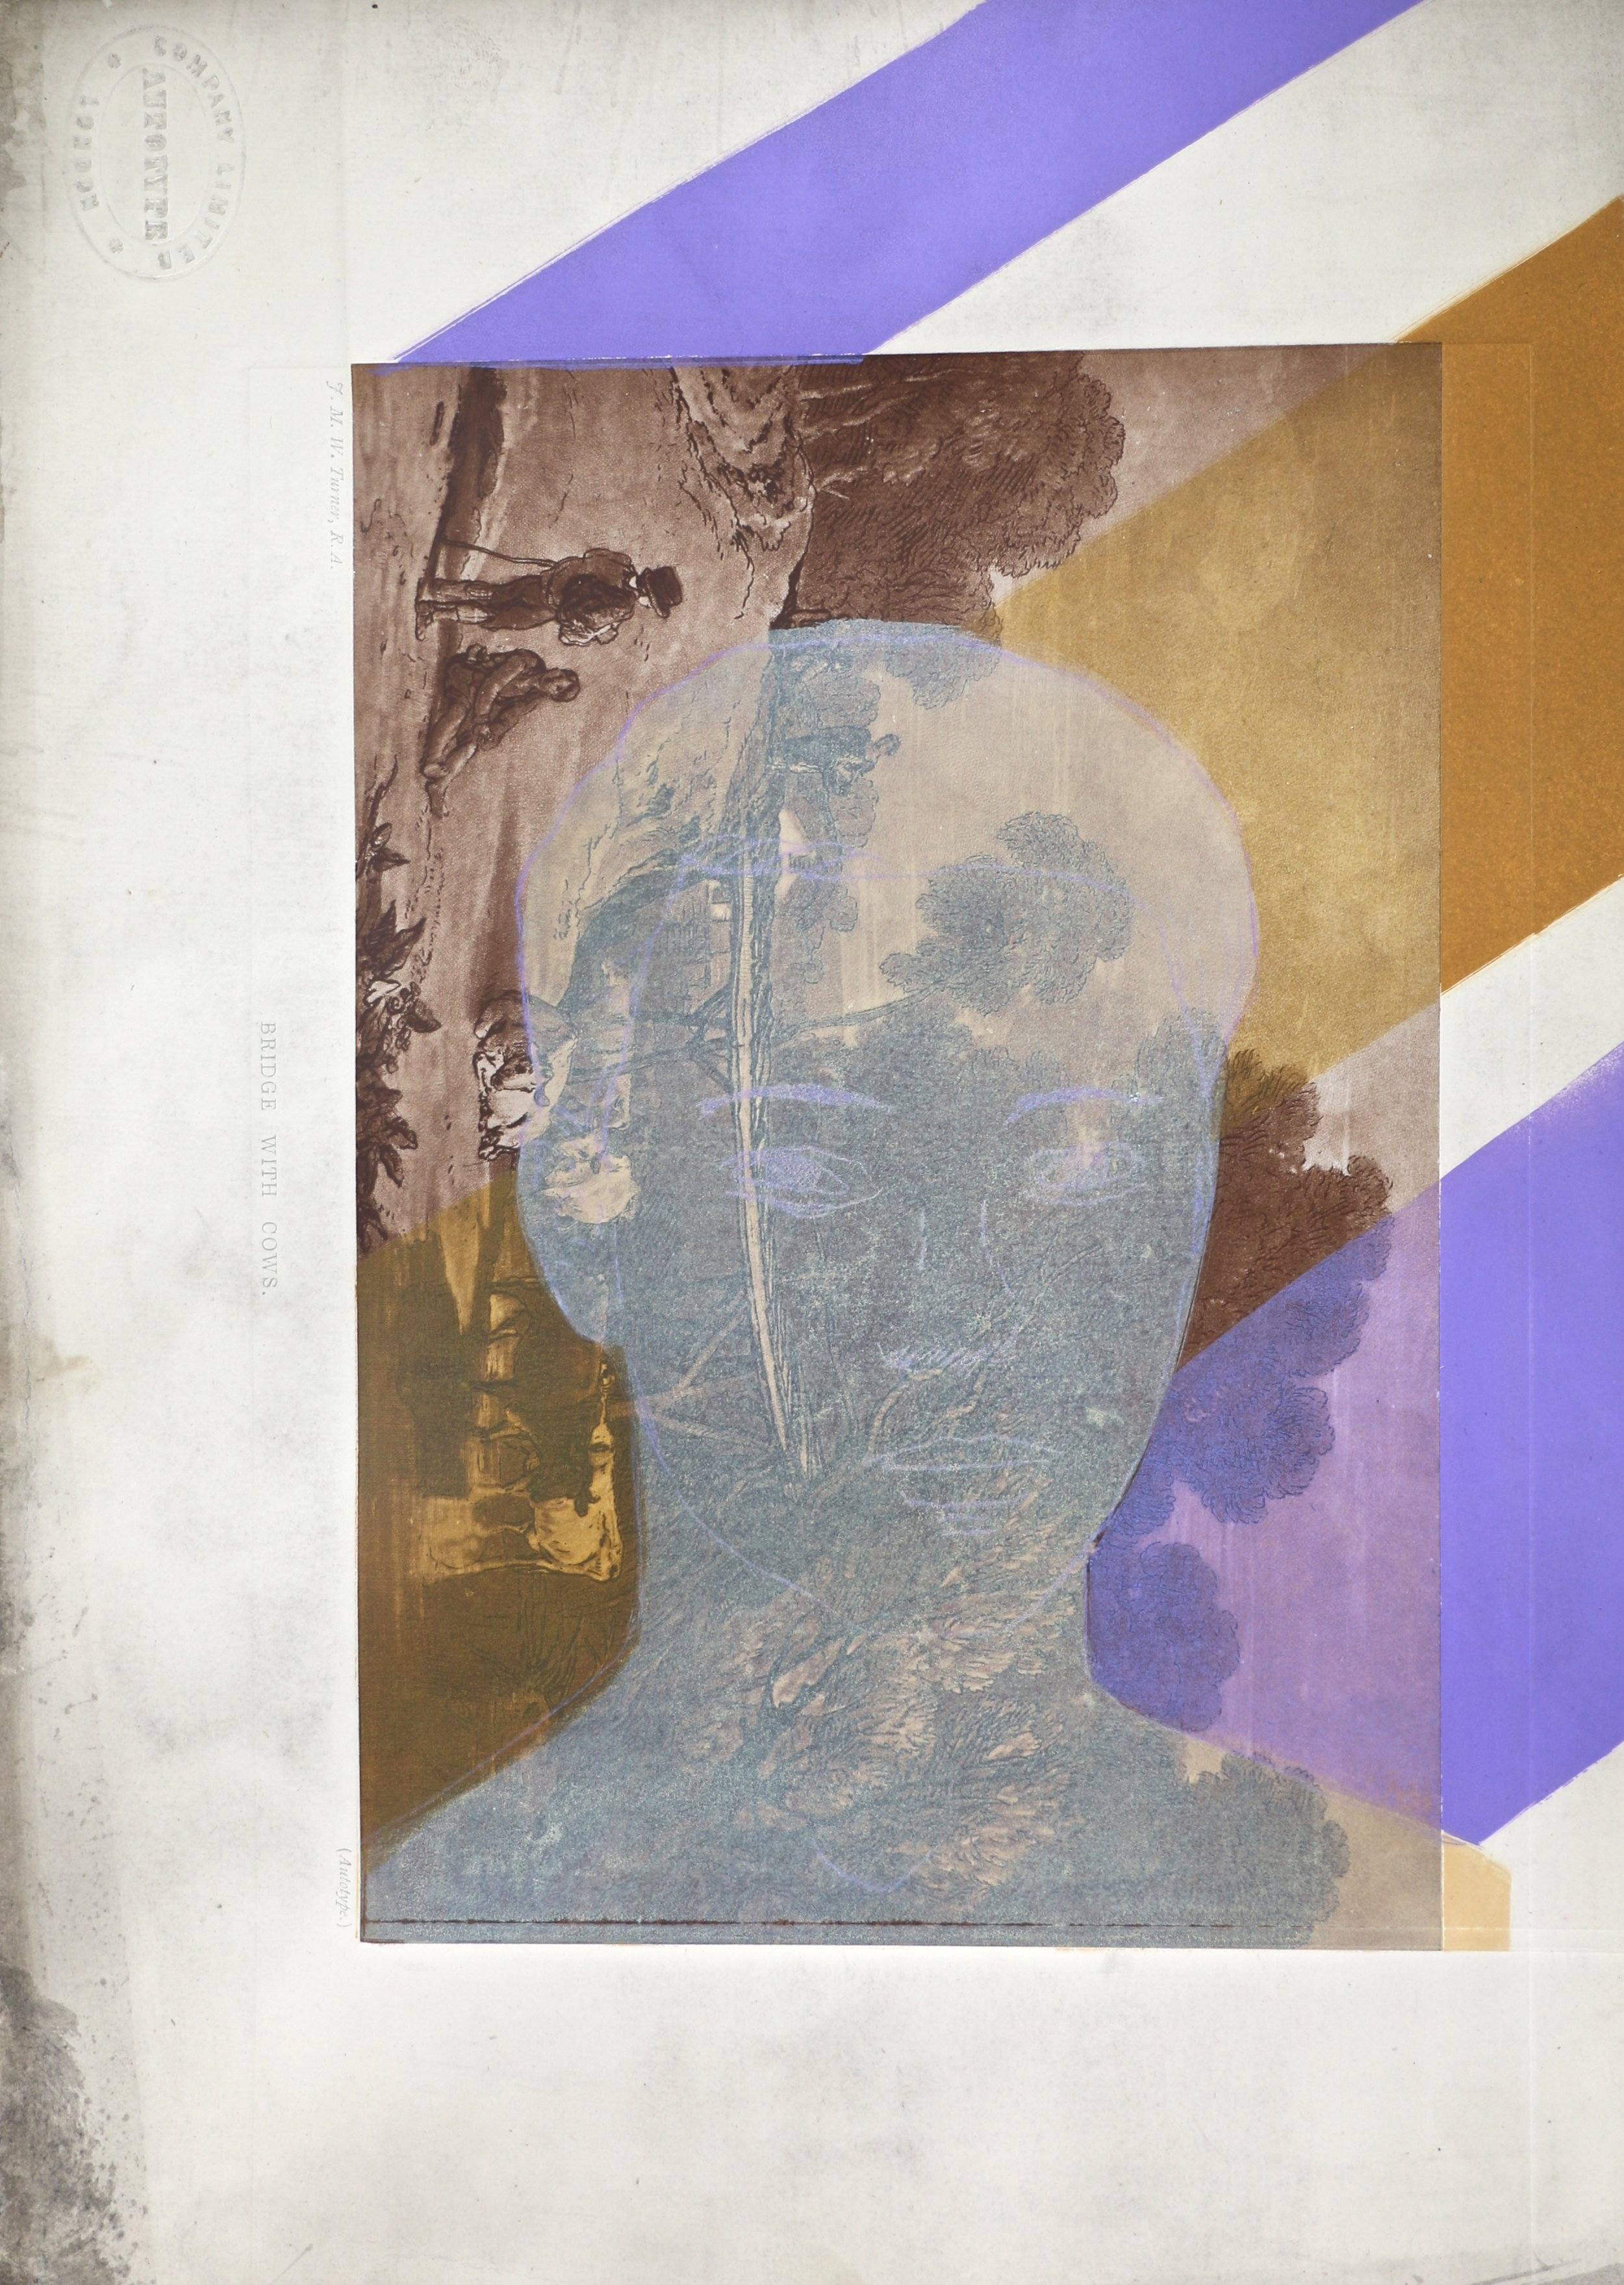 The Visitor    37 x 26 cm  Dryprint and Monoprint on Turner Autotype